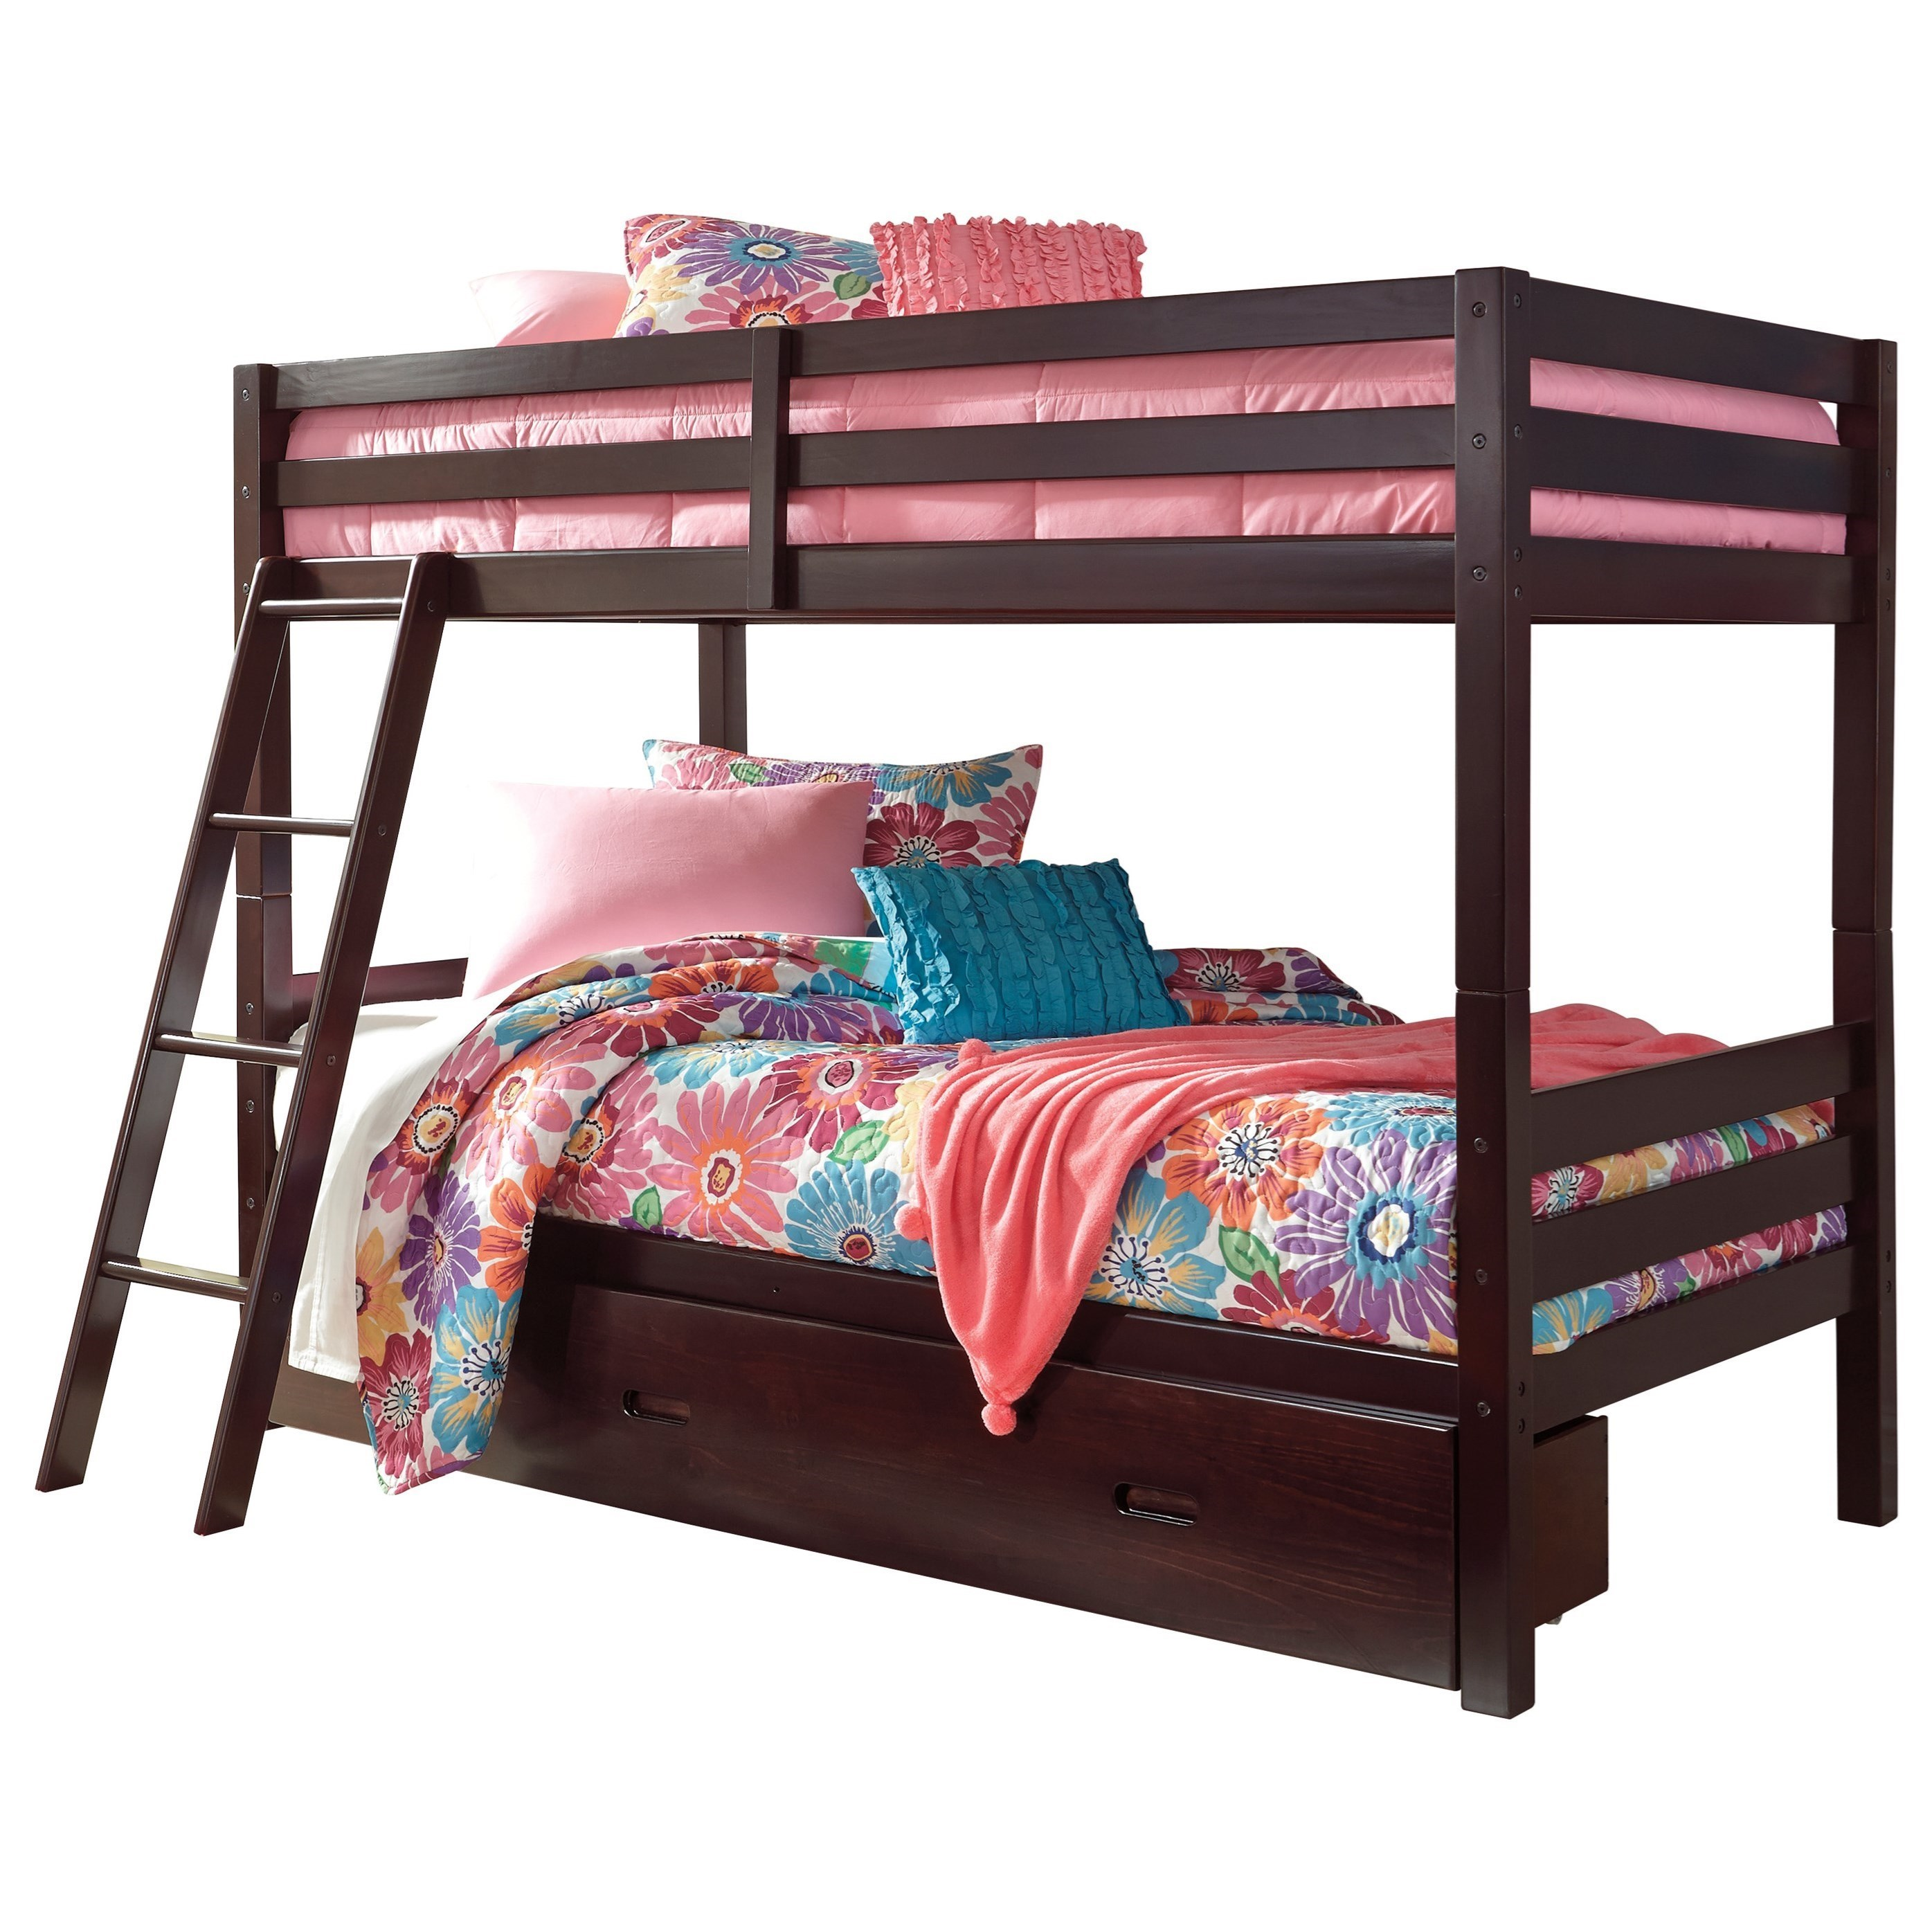 Signature Design by Ashley HalantonTwin/Twin Bunk Bed w/ Under Bed Storage ...  sc 1 st  Royal Furniture & Signature Design by Ashley Halanton Solid Pine Twin/Twin Bunk Bed w ...